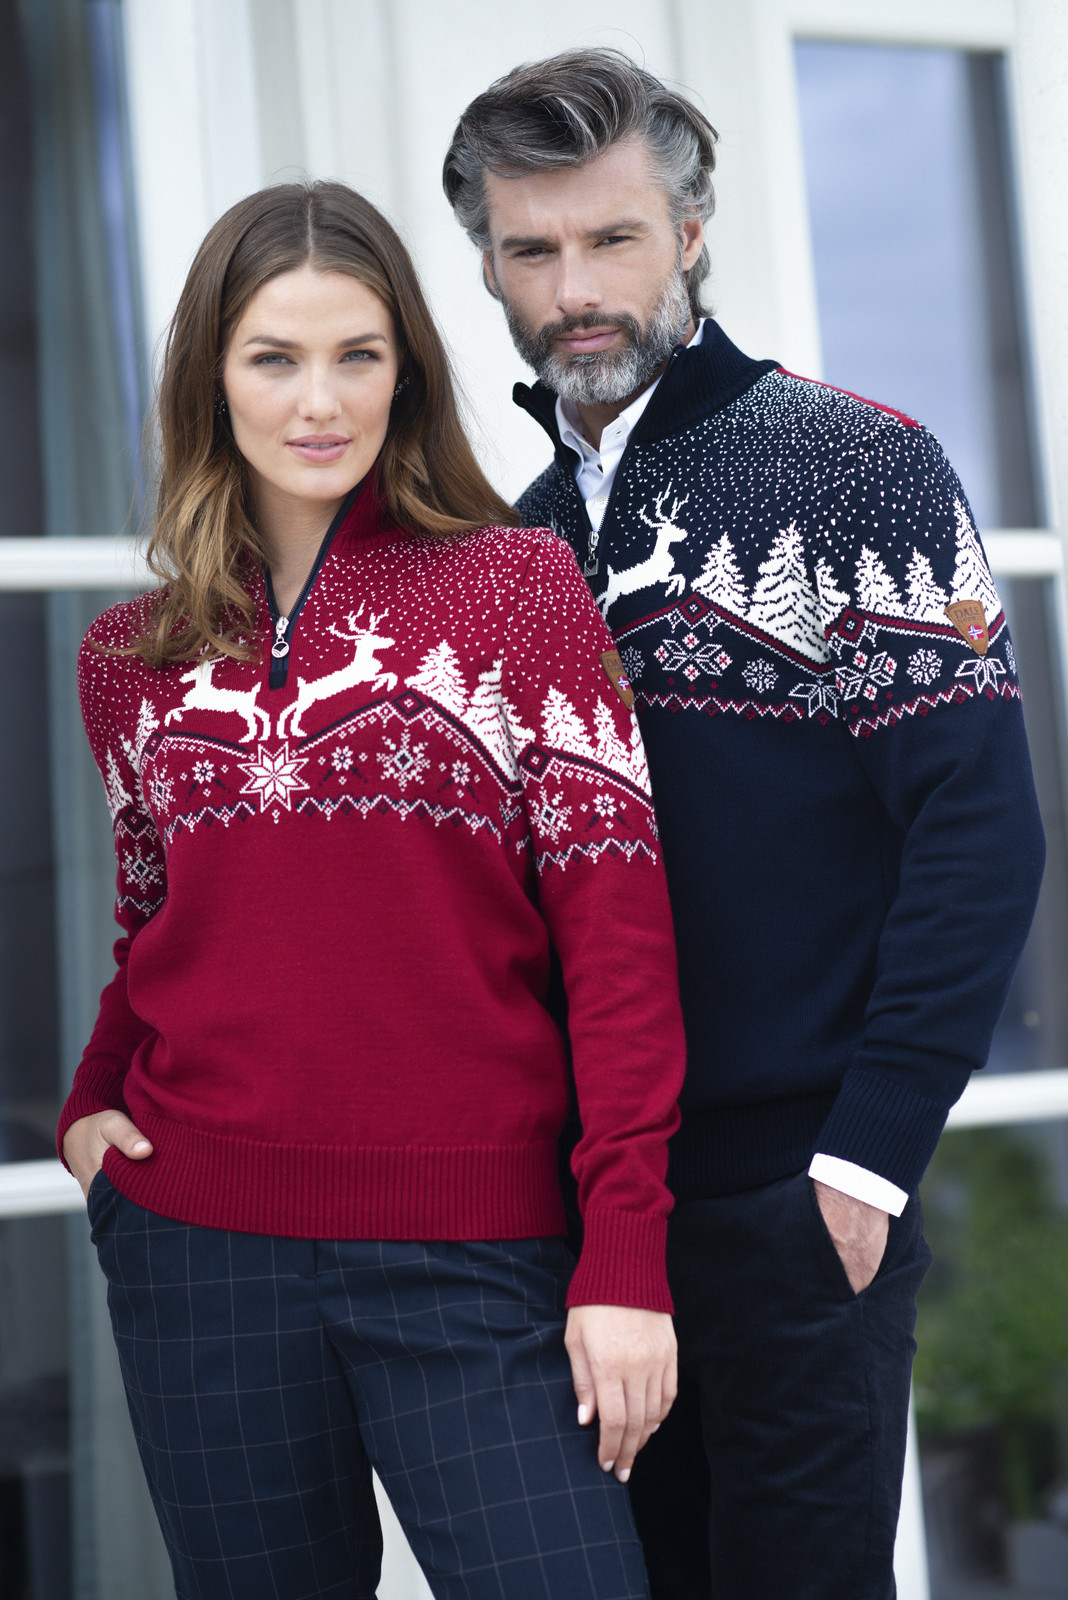 Couple wearing Dale Christmas Sweaters 93921-B and 93931-C